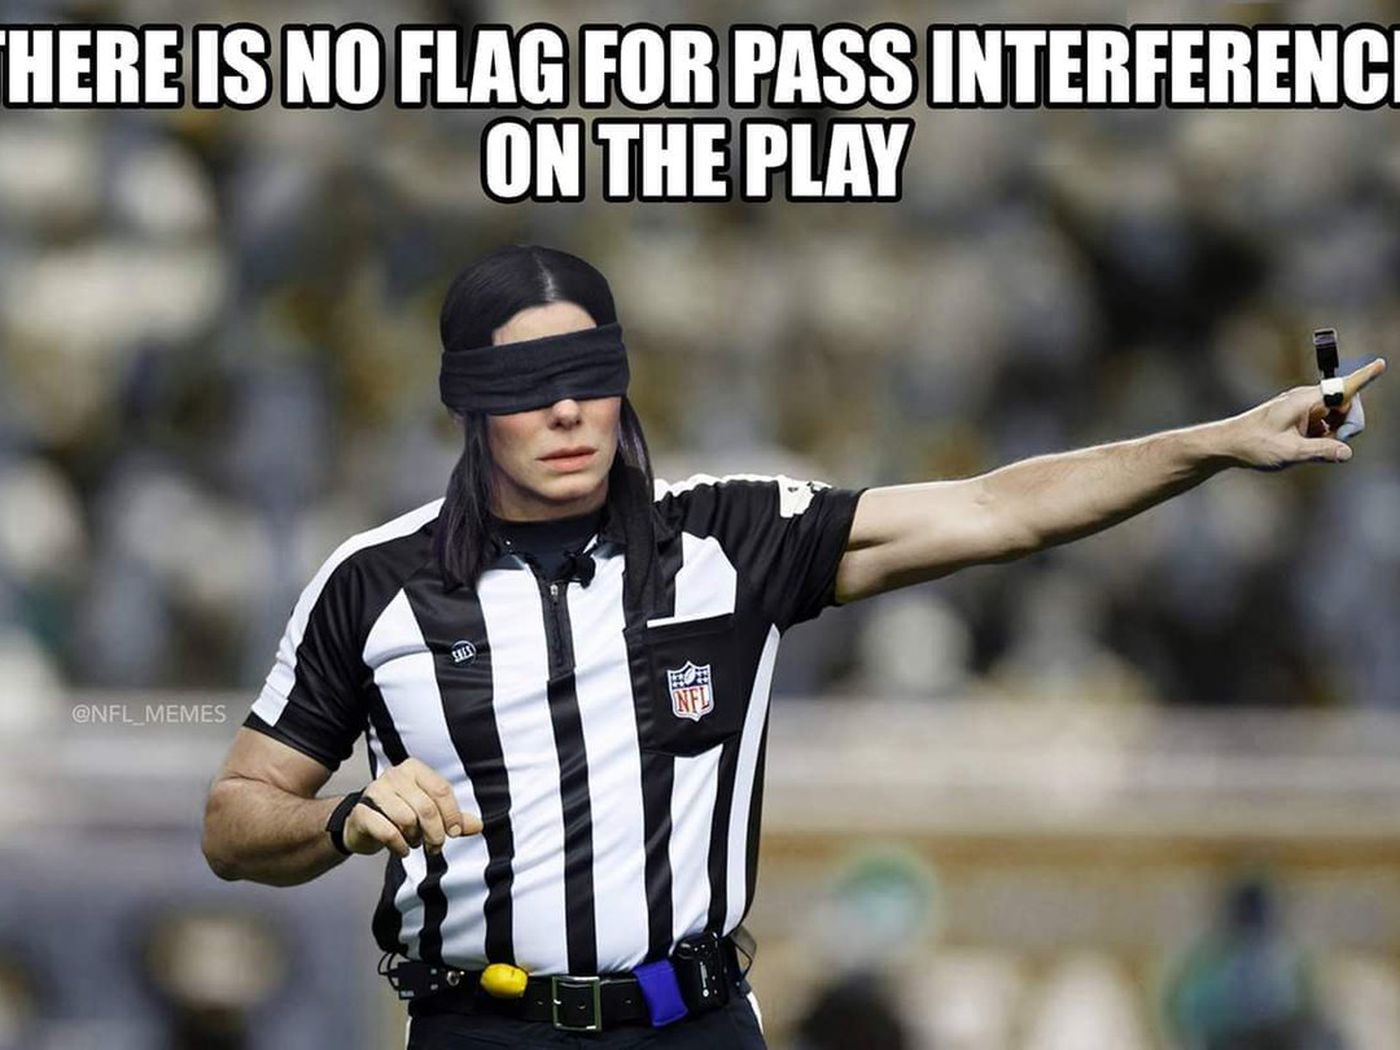 The Internet S Reaction To The Saints Rams No Call For Pass Interference Shows How Wild It Was Sbnation Com